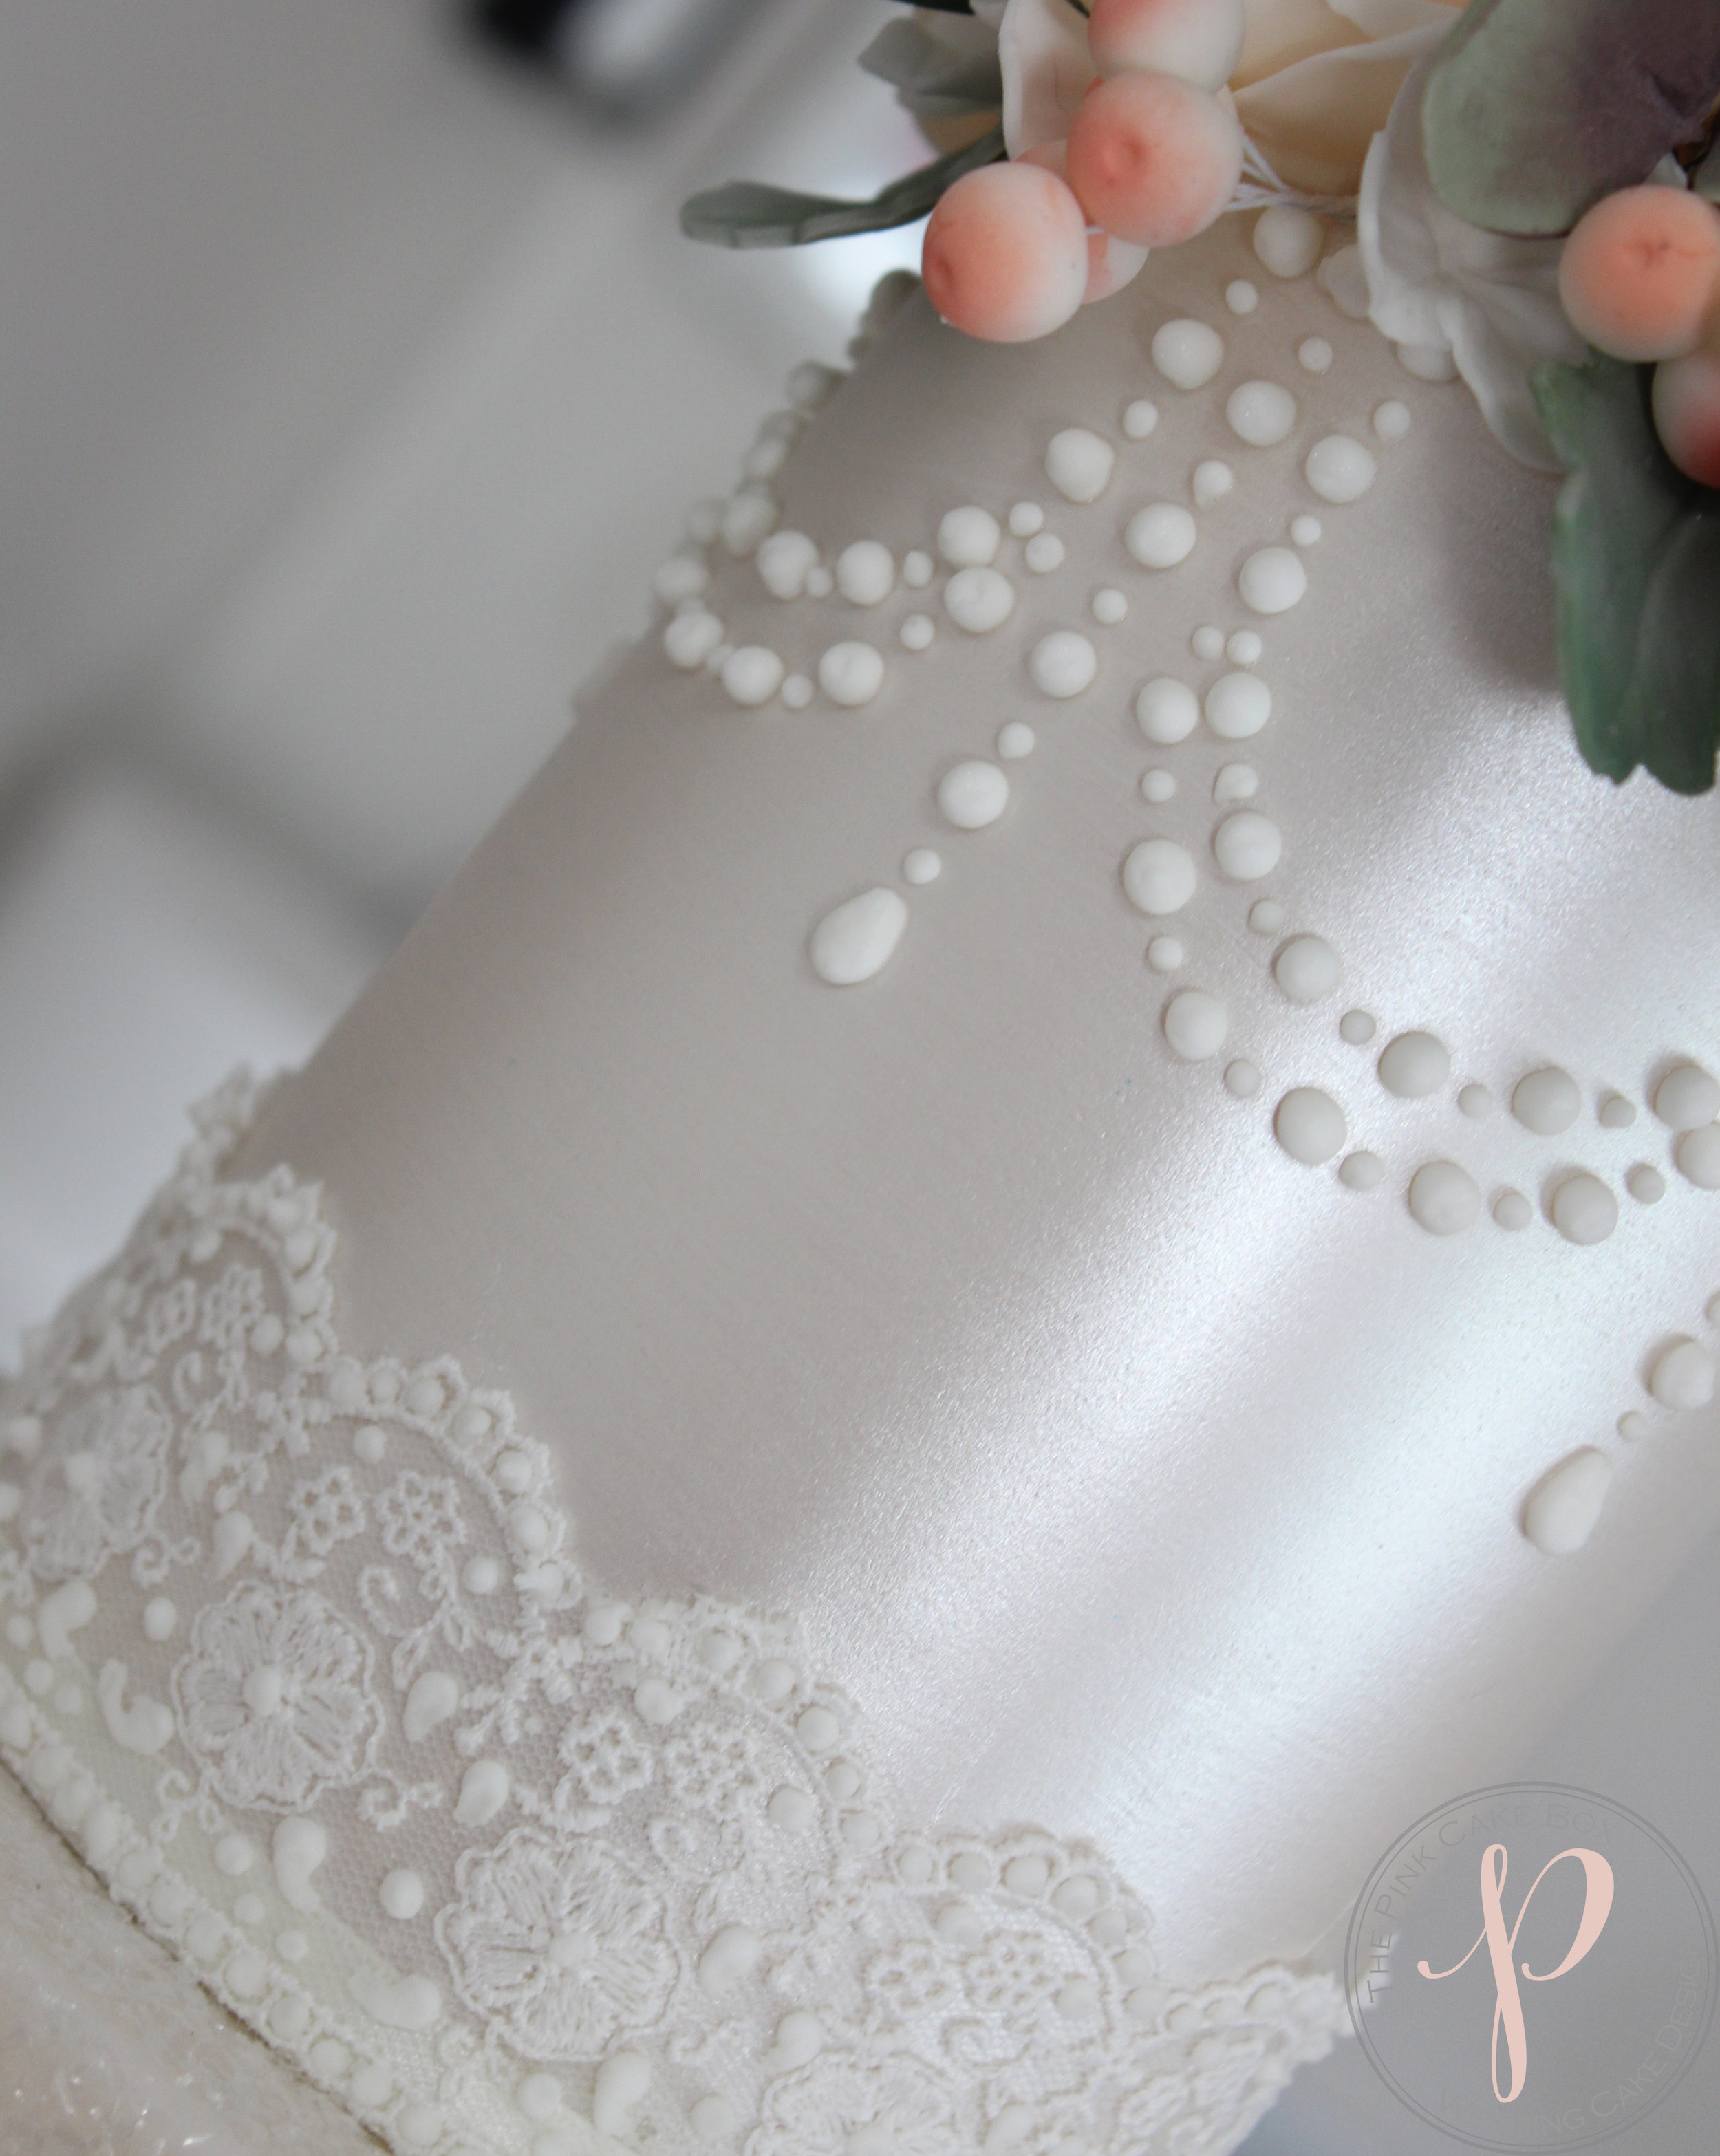 lustre pearls and lace cake.jpg